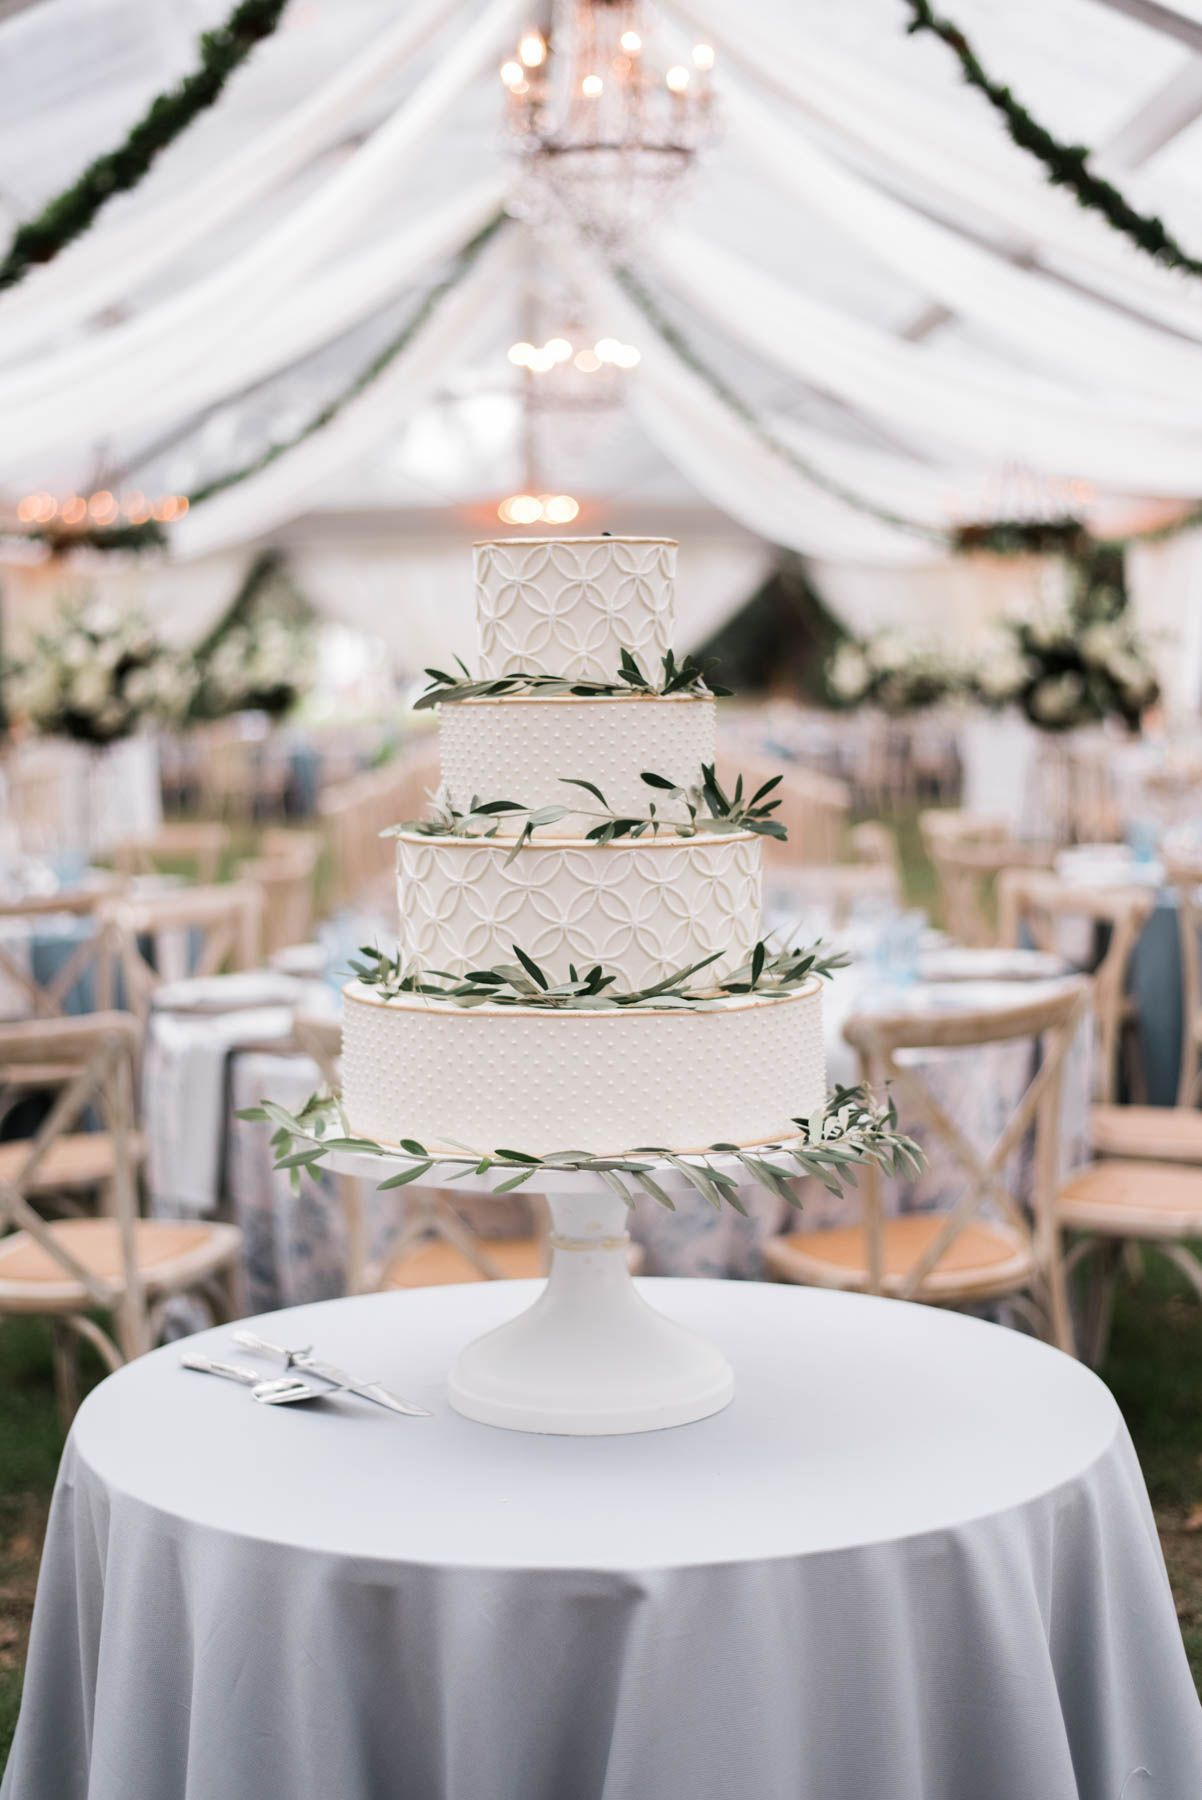 Ideas for an all white simple and classic tiered wedding cake for